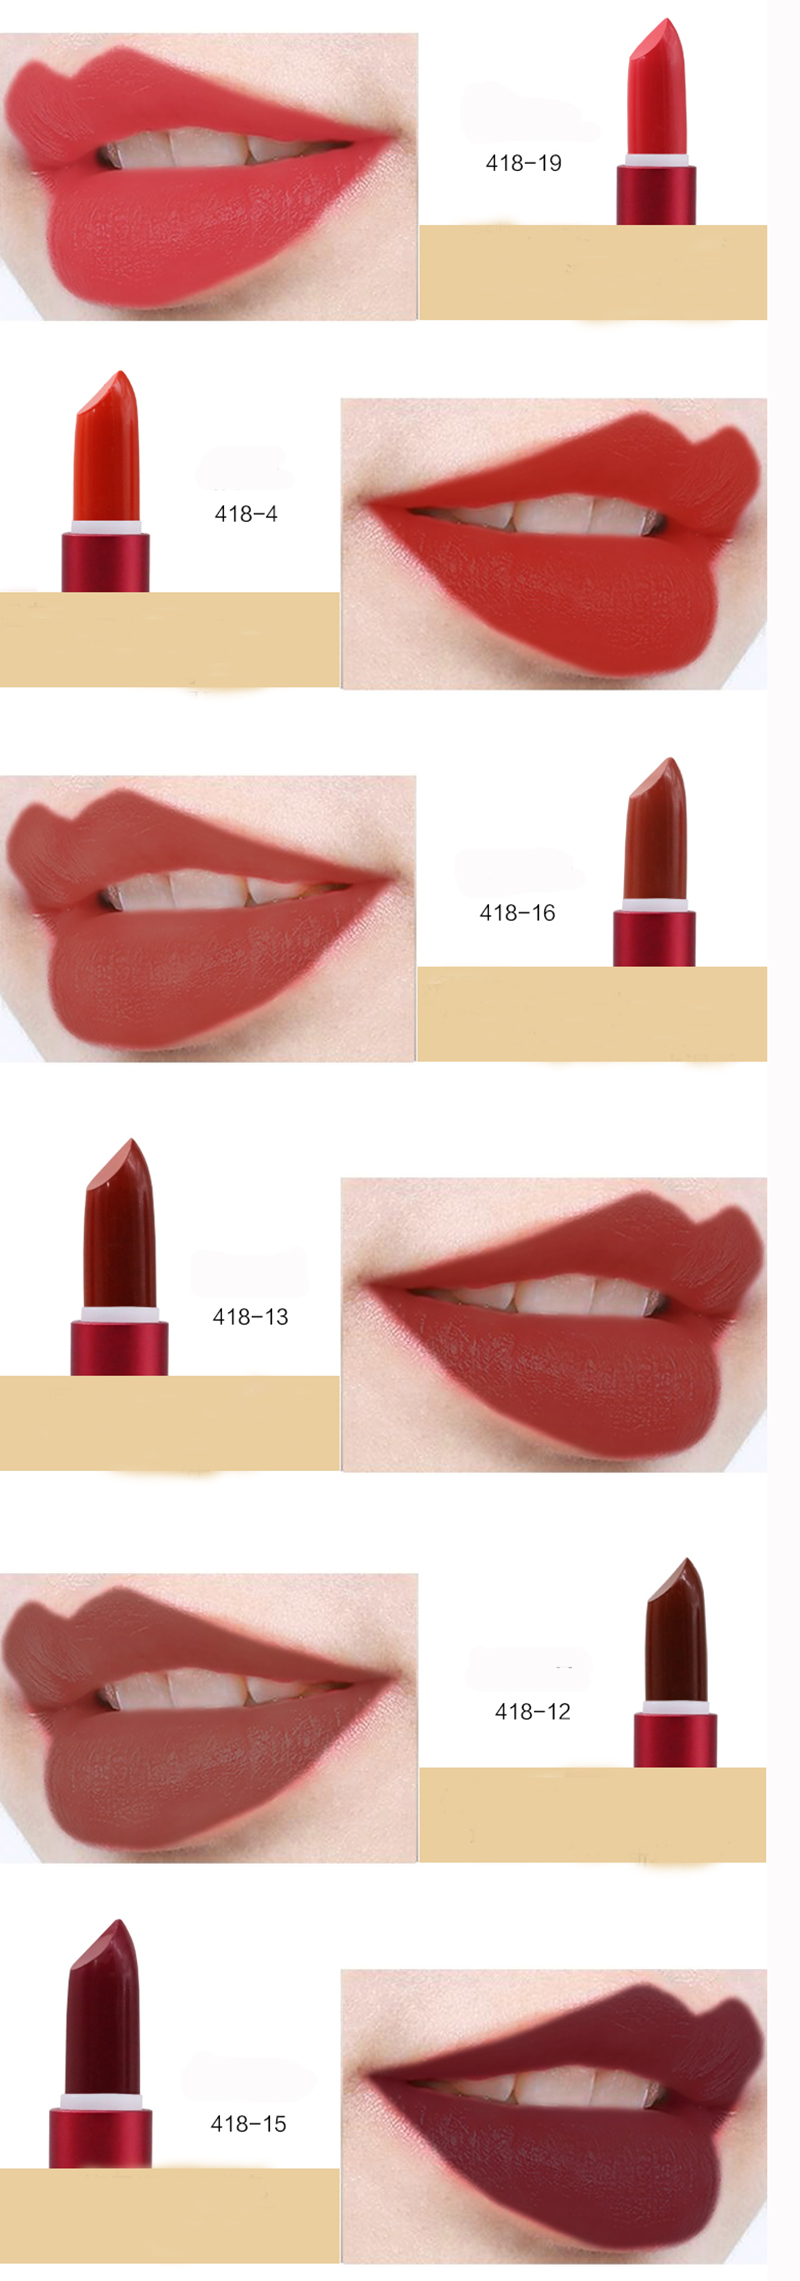 Make Up Factory Niedriger Preis OEM Matte Lipstick Private Label Eigene Marke